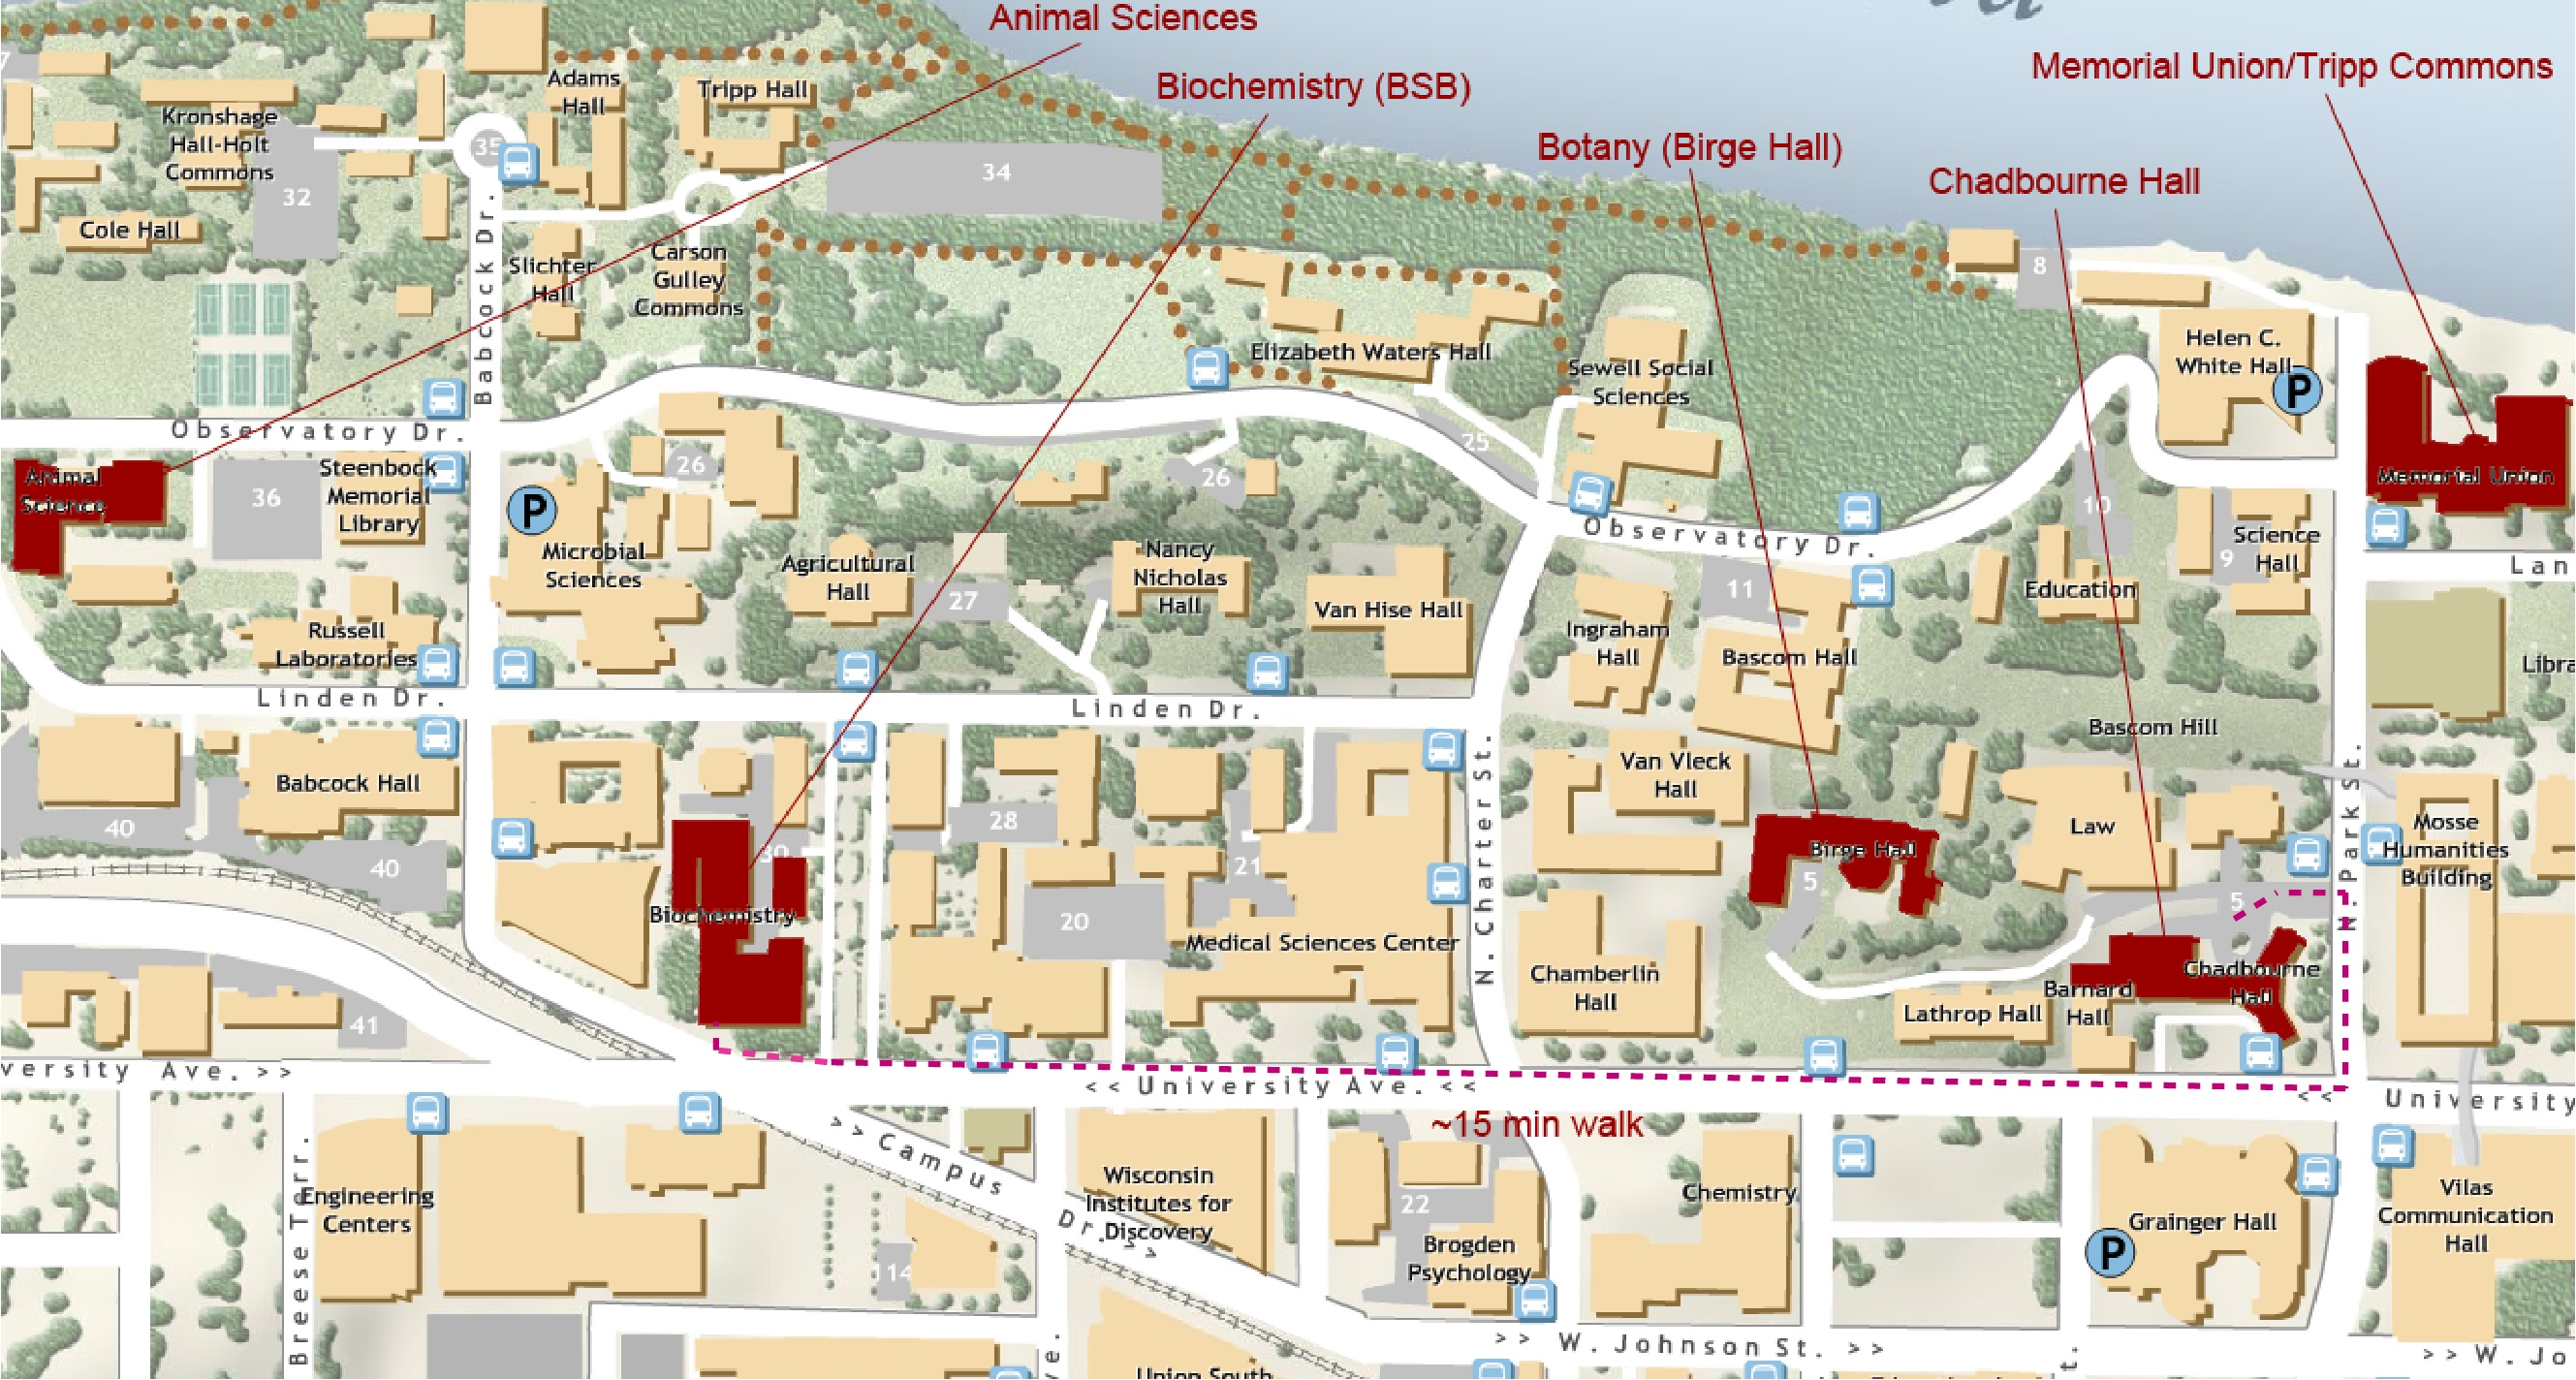 uw madison campus map printable Midwest Pcb Registrants uw madison campus map printable